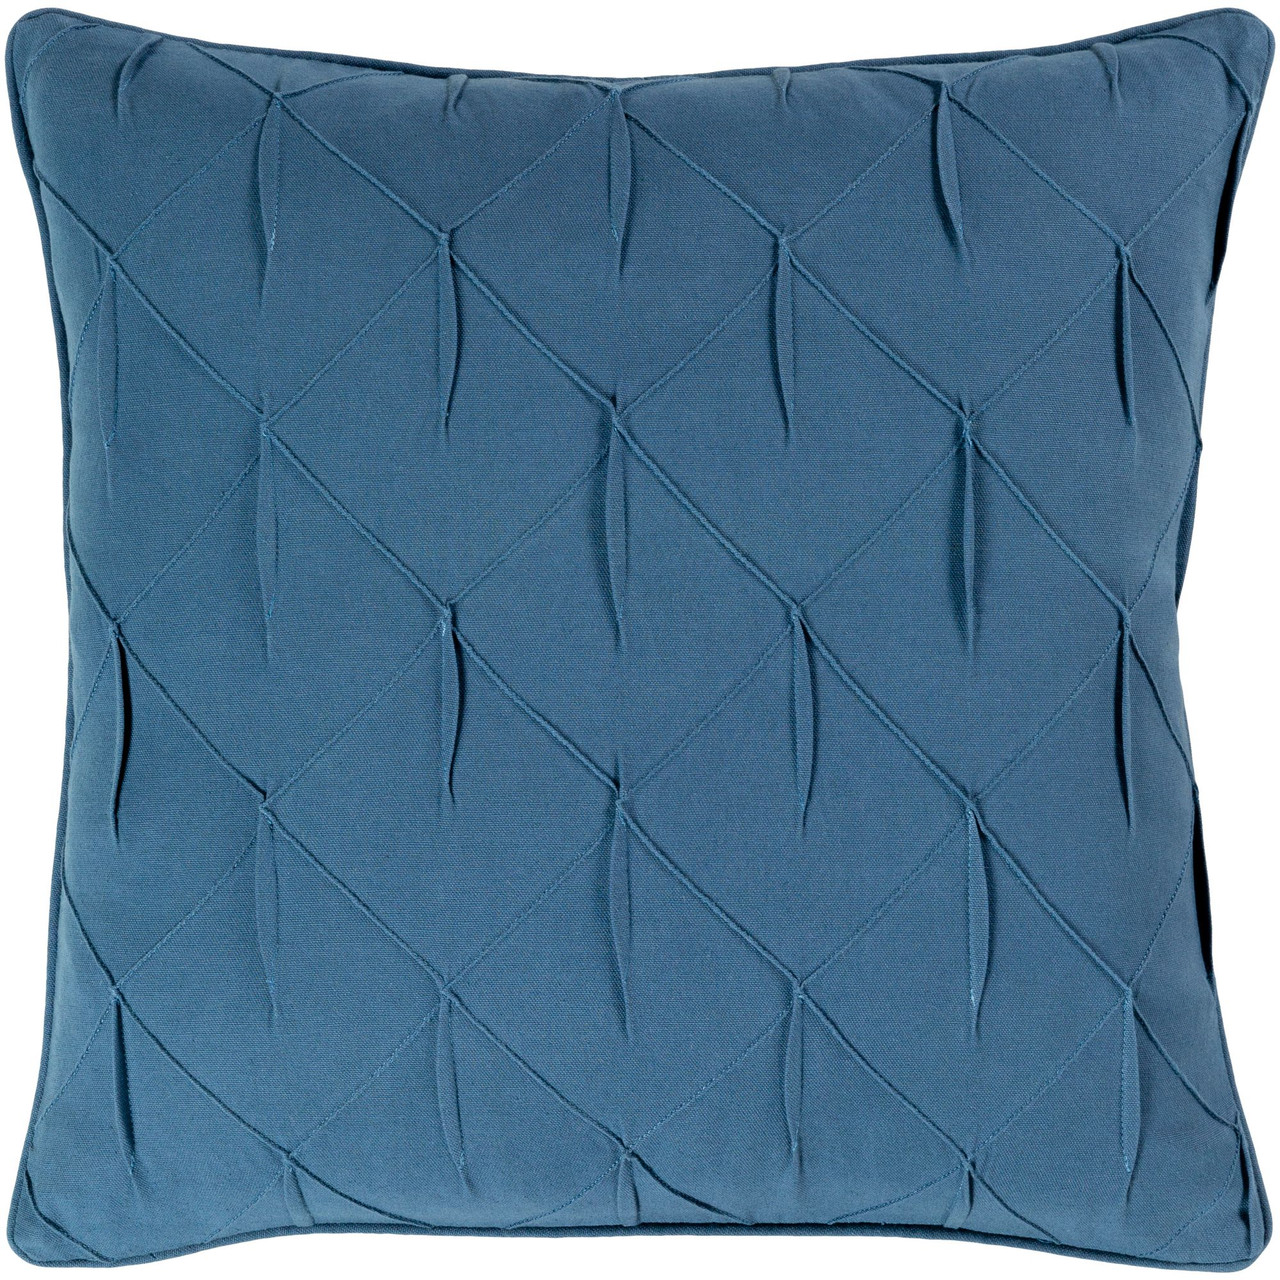 22 Blue Textured Lattice Pattern With Fabric Manipulation Design Square Throw Pillow Cover Christmas Central